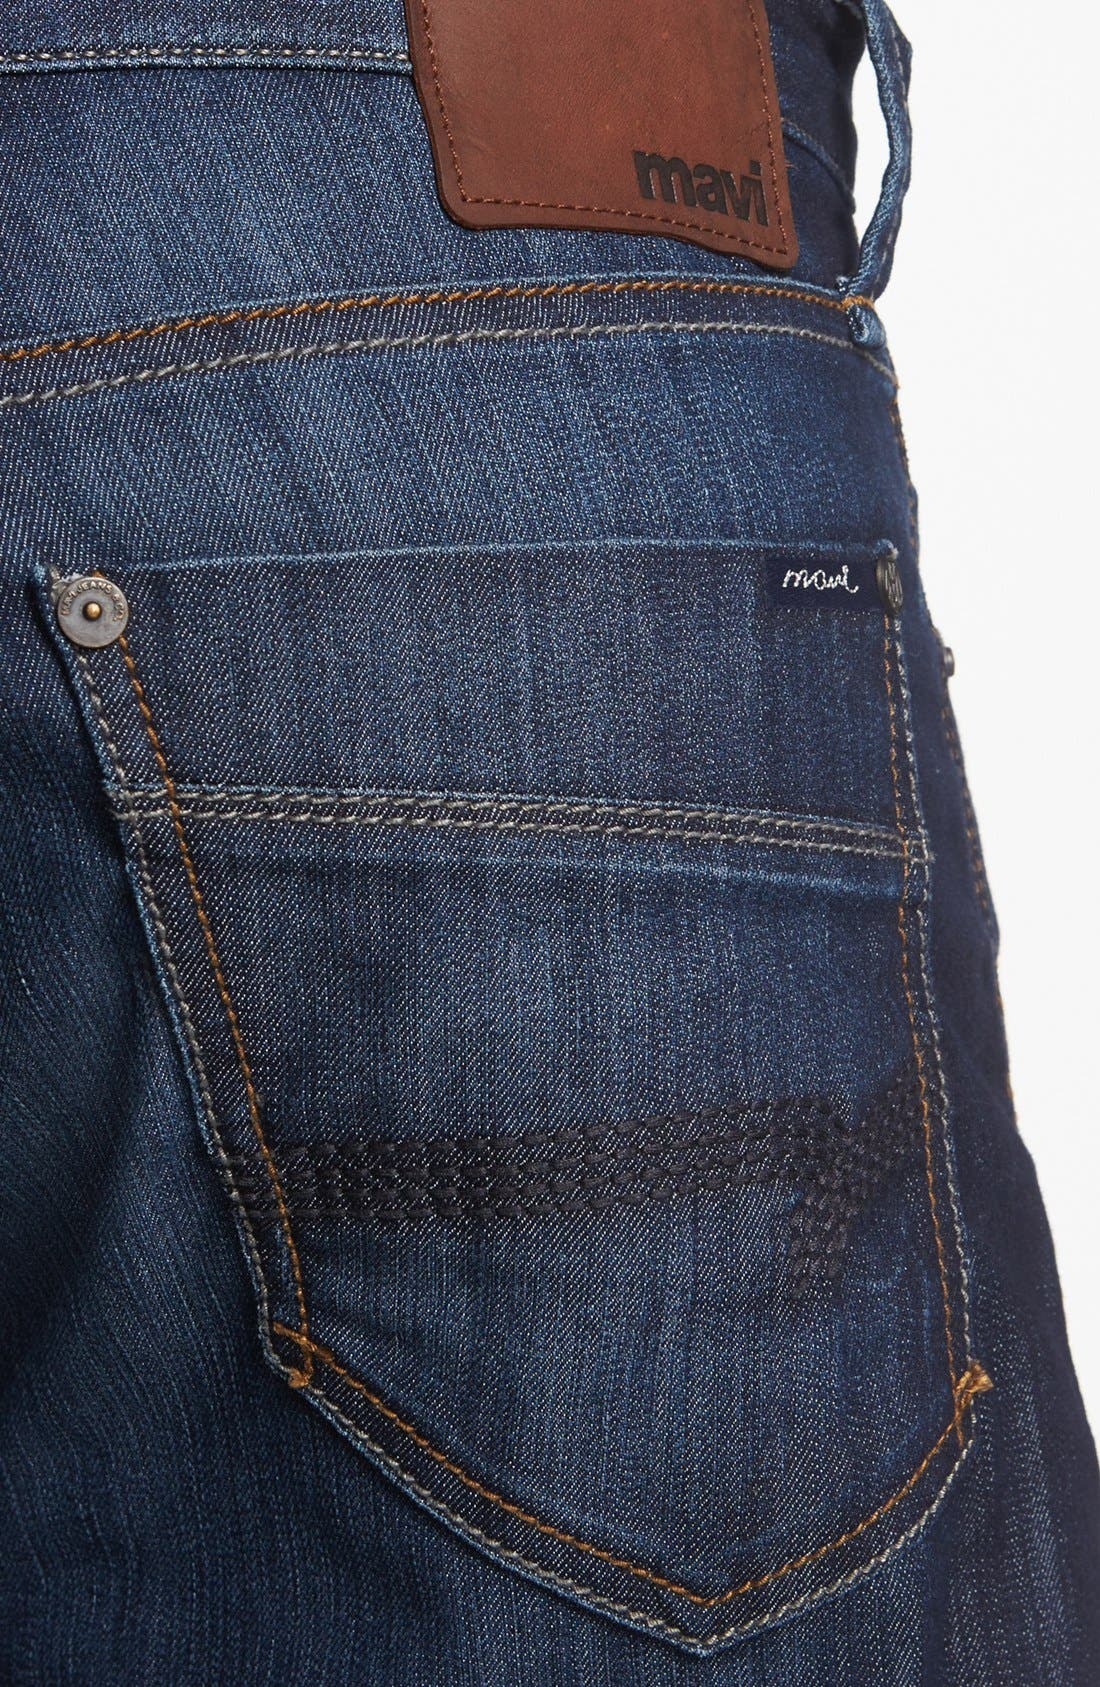 Alternate Image 4  - Mavi Jeans 'Max' Relaxed Jeans (Rinse Arizona Comfort) (Online Only)